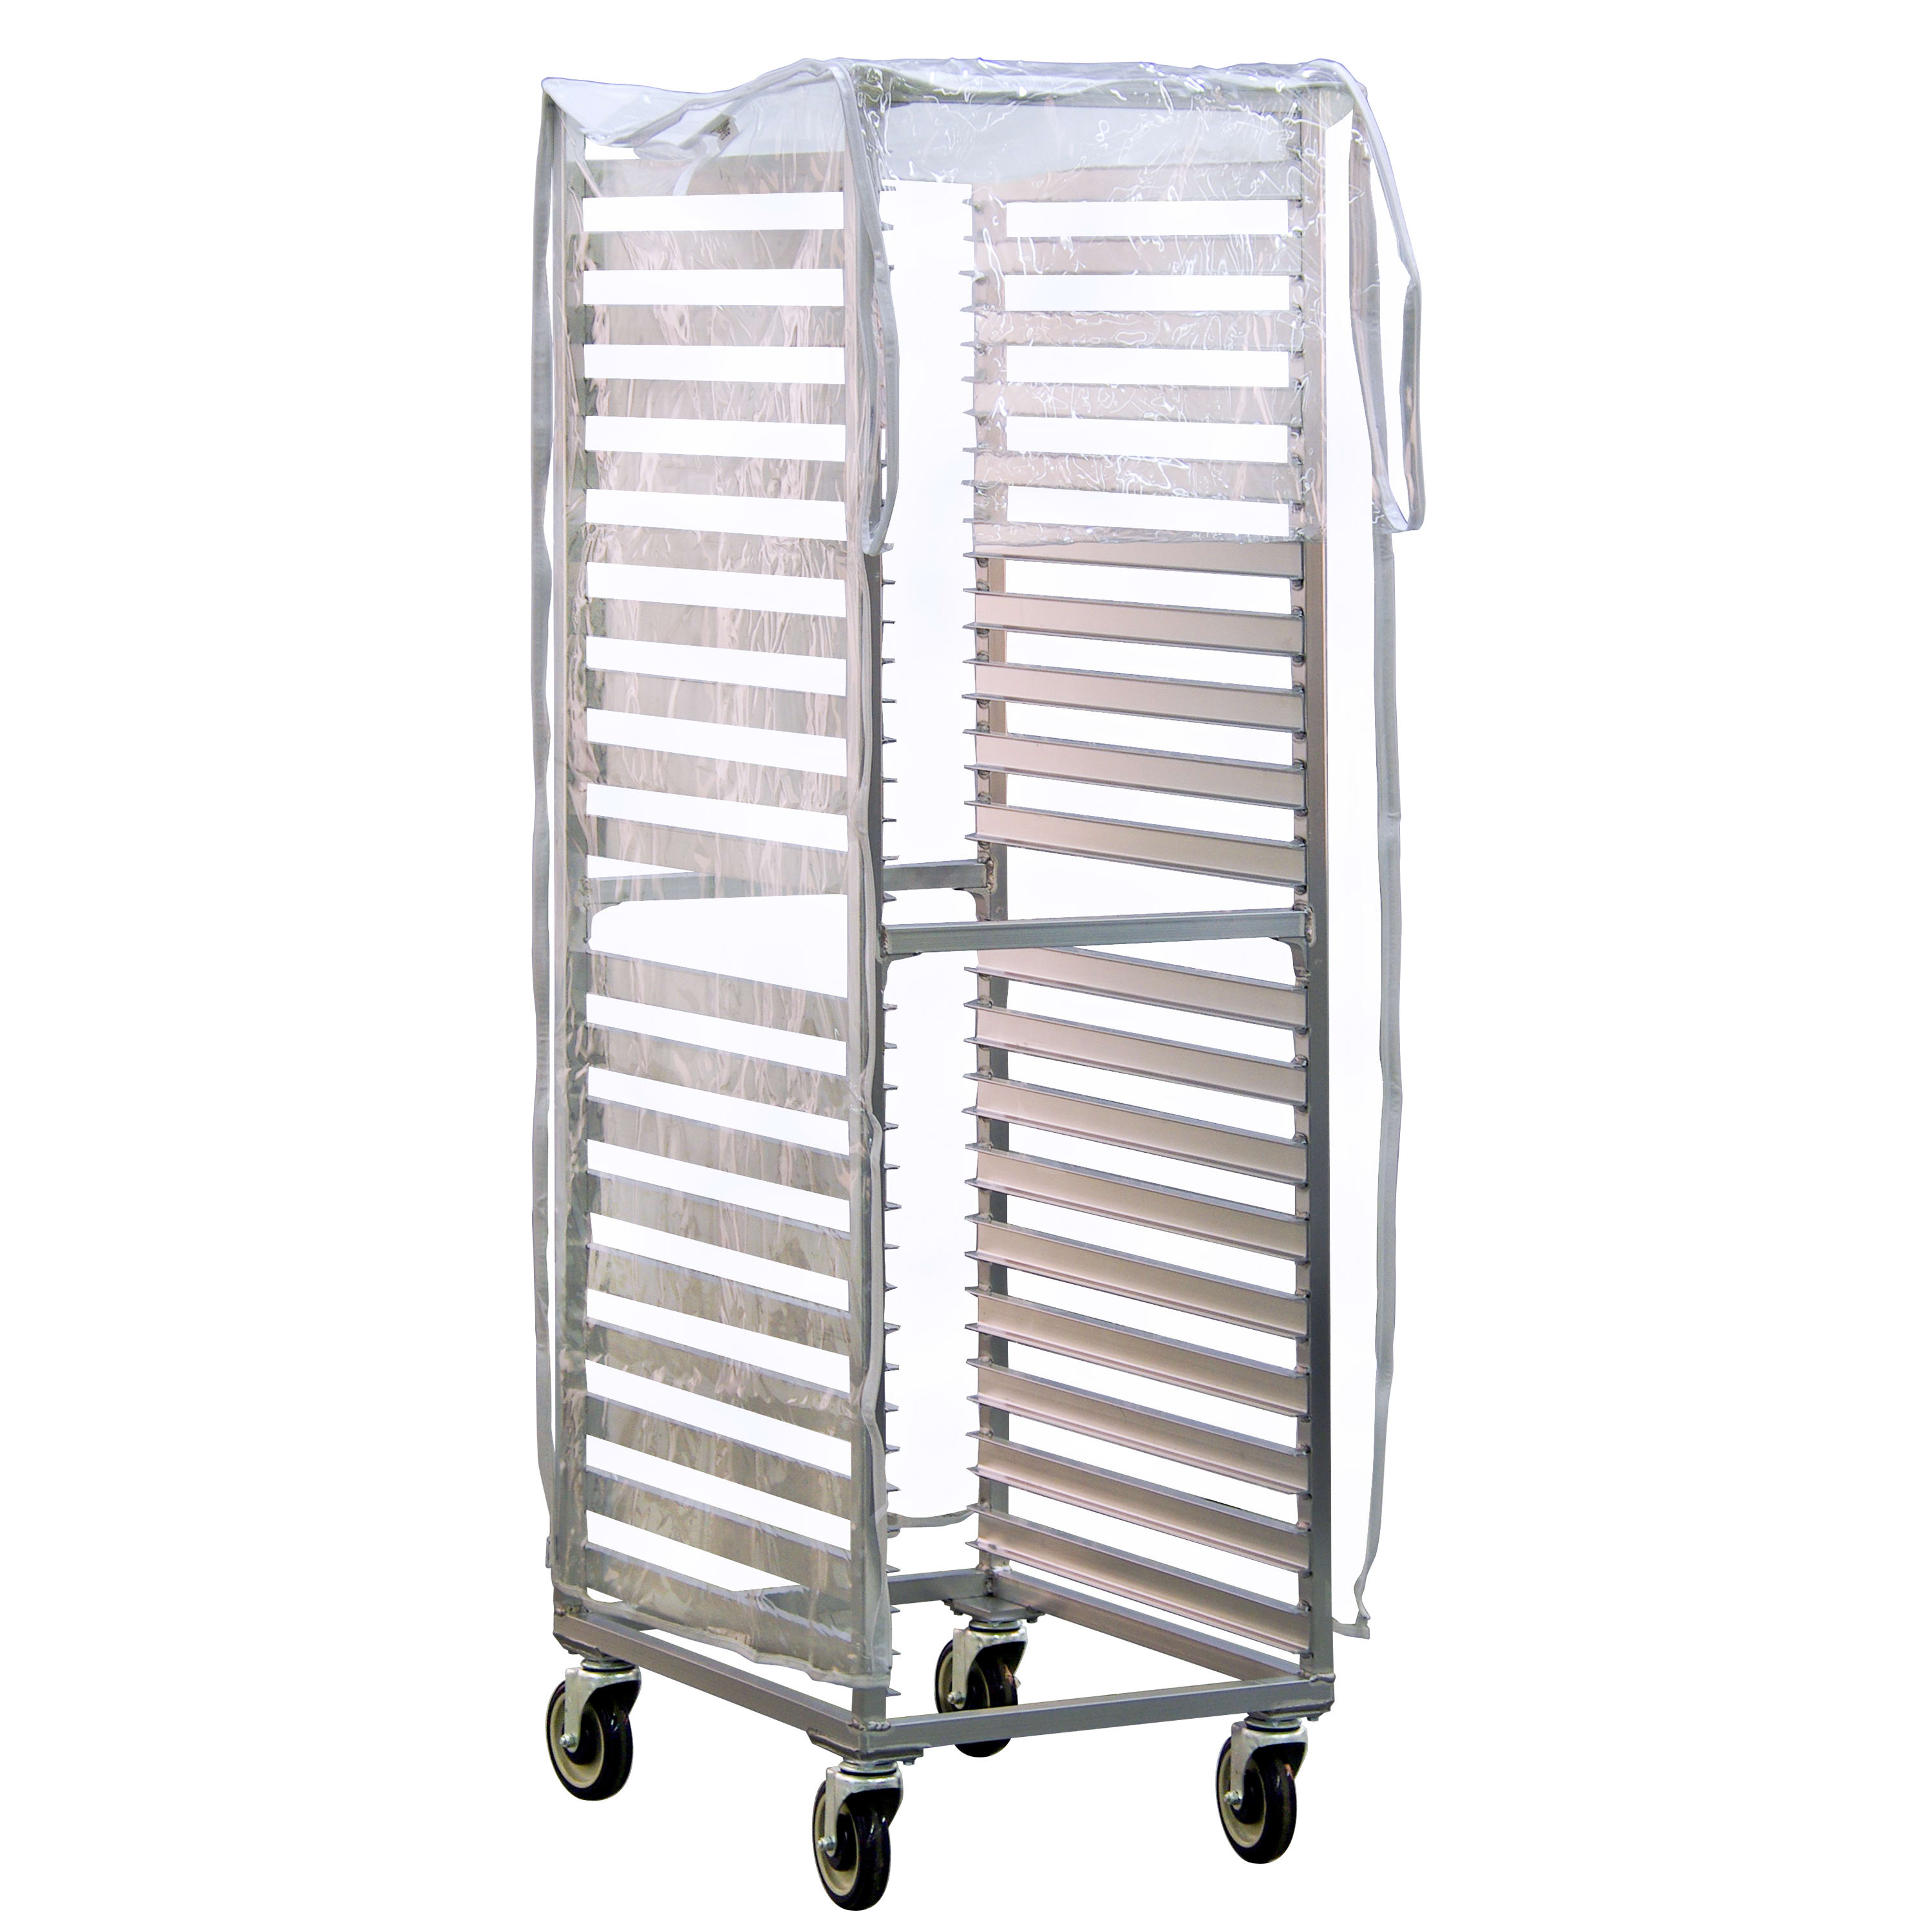 New Age 1359 End-Loading Rack Cover w/ 2 Zippers, Heavy Duty Vinyl